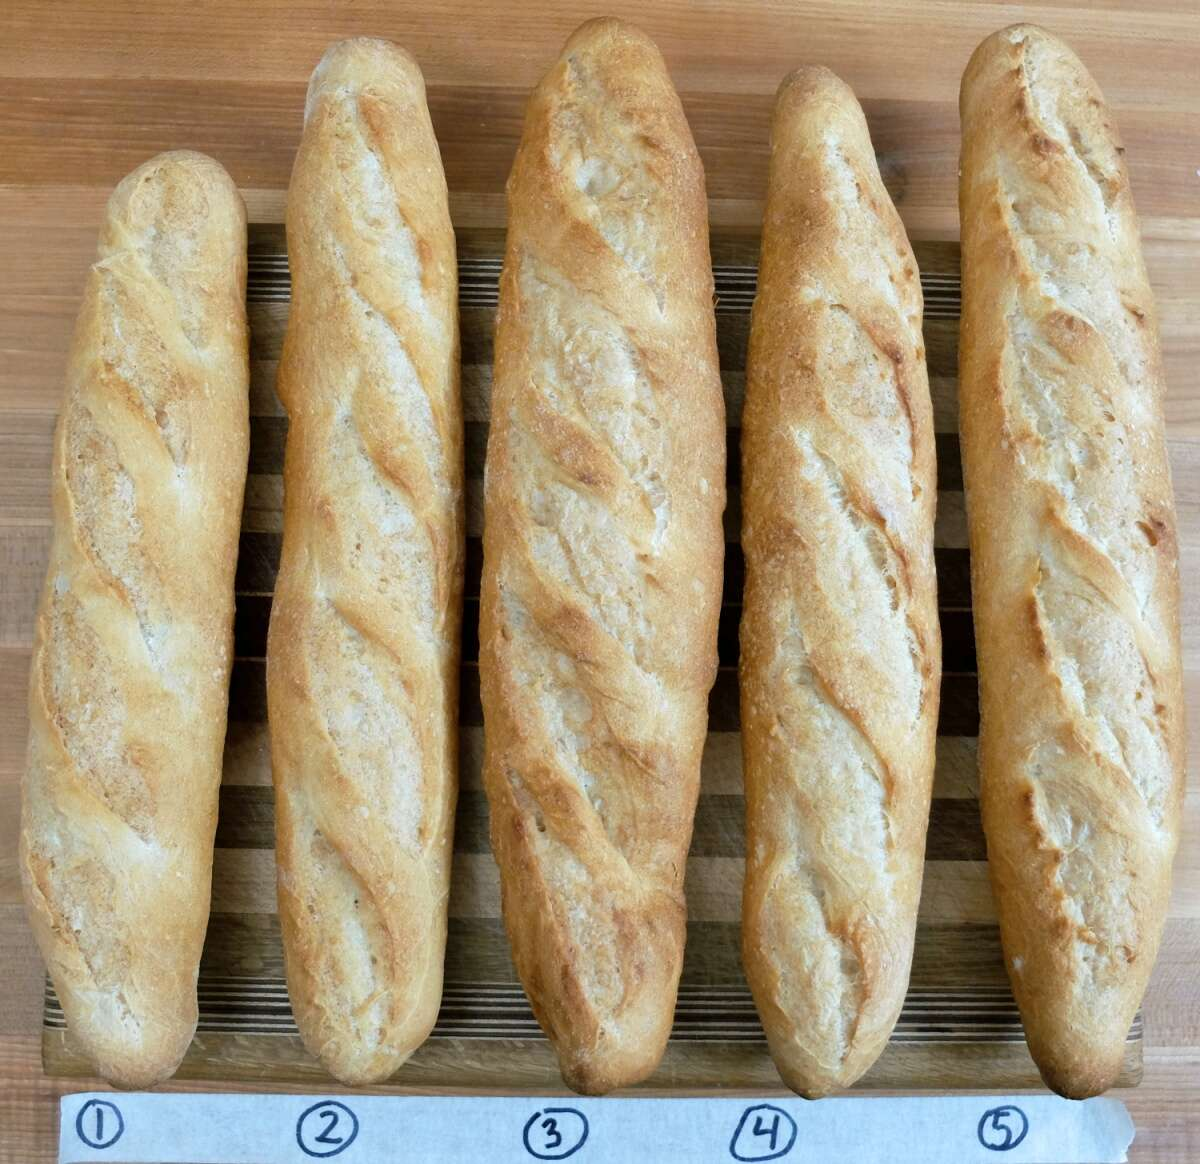 Using the autolyse method via @kingarthurflour